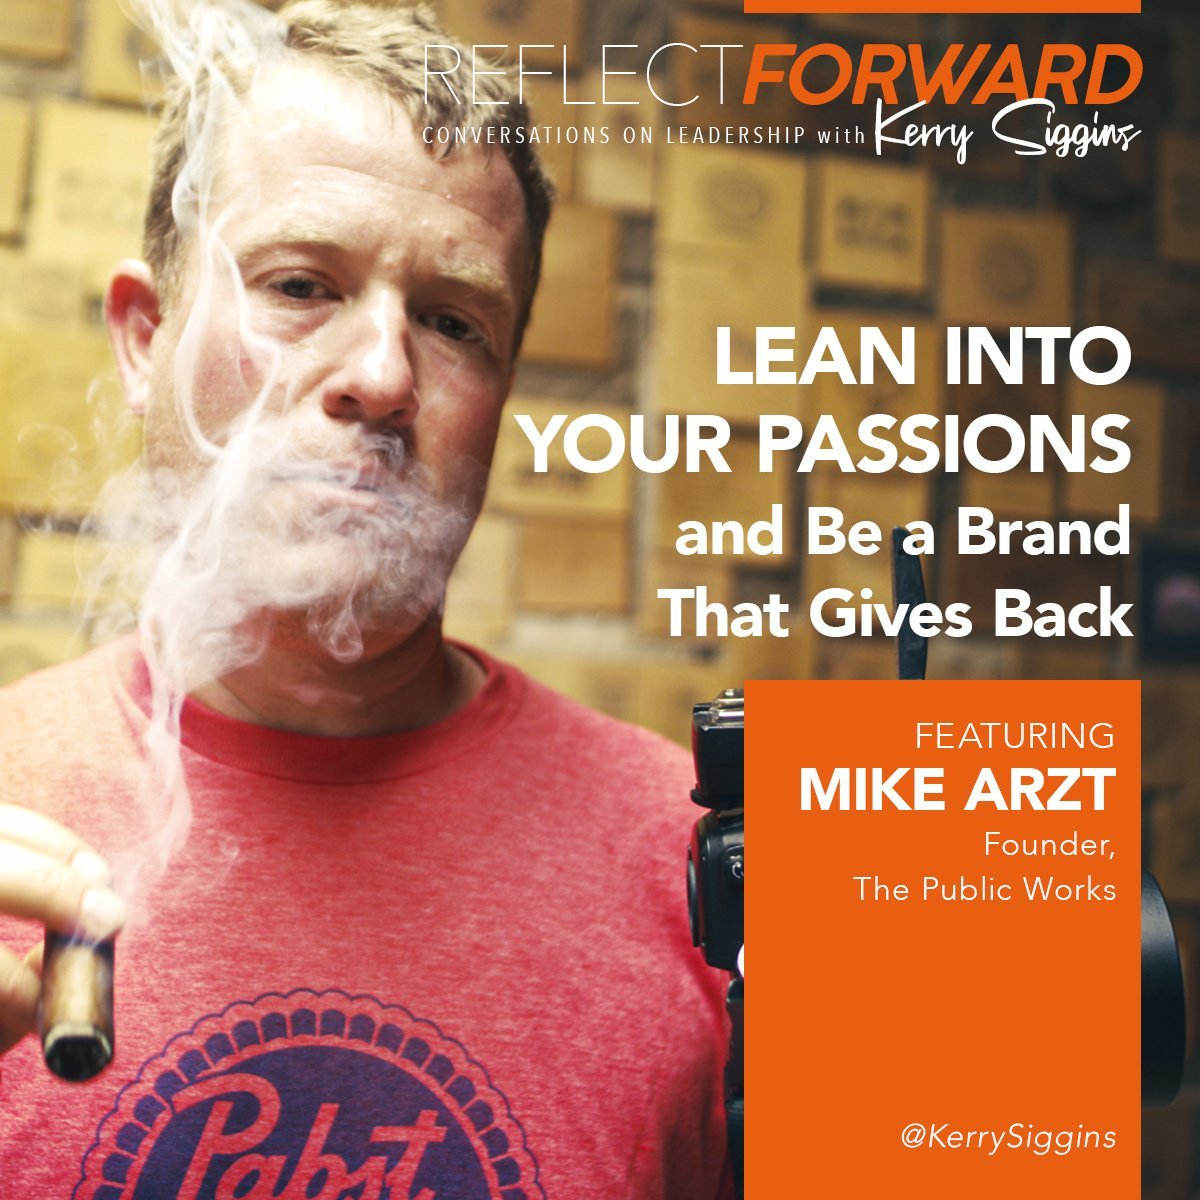 Lean into your passions and be a brand that gives back